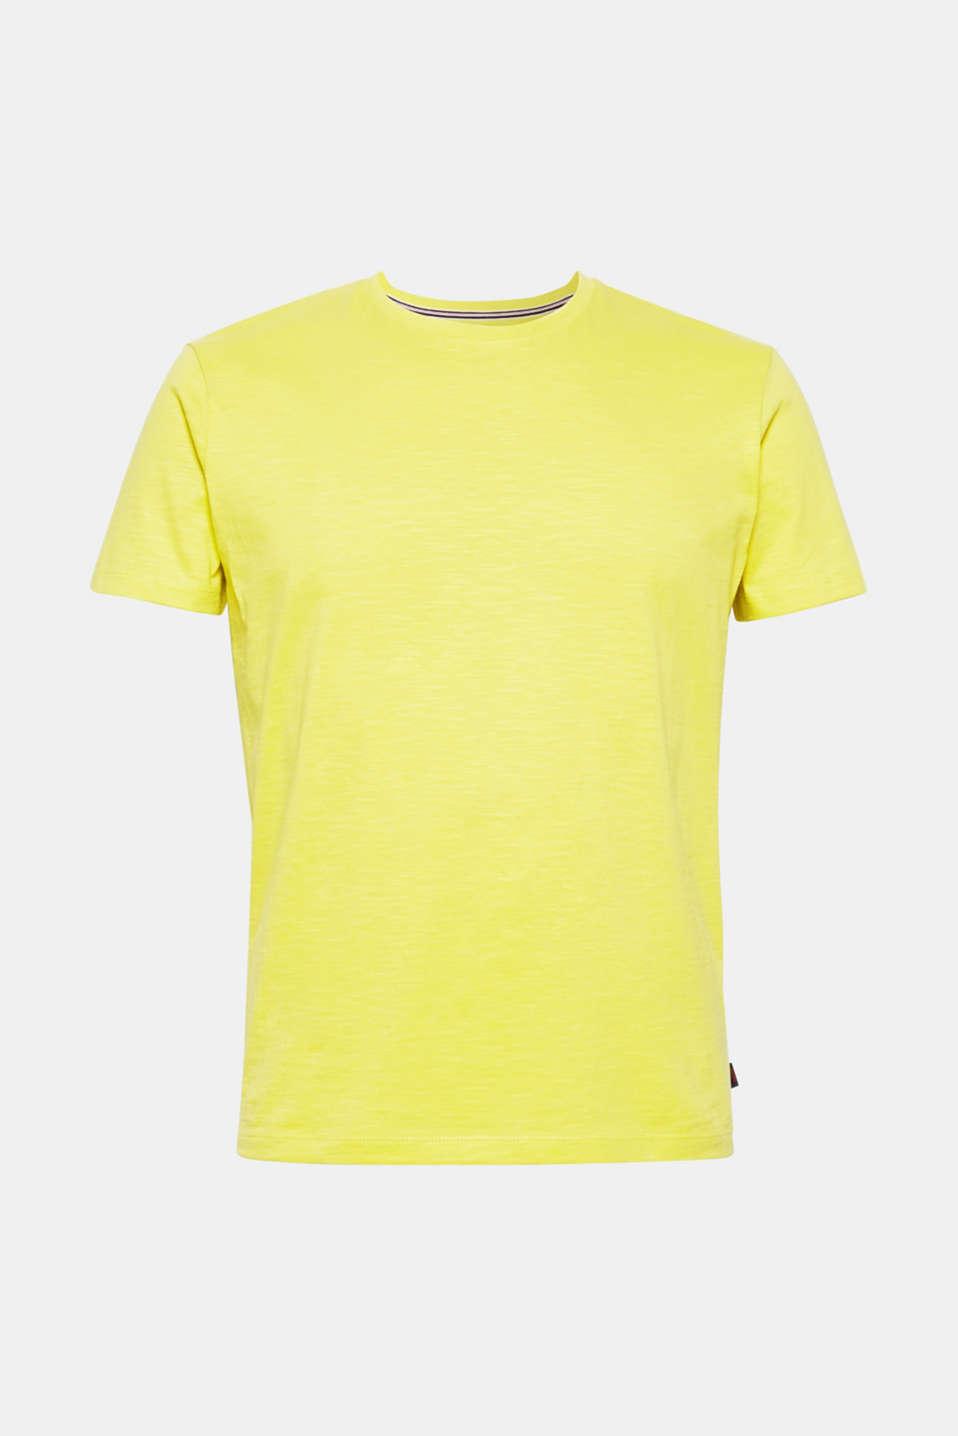 T-Shirts, YELLOW, detail image number 8